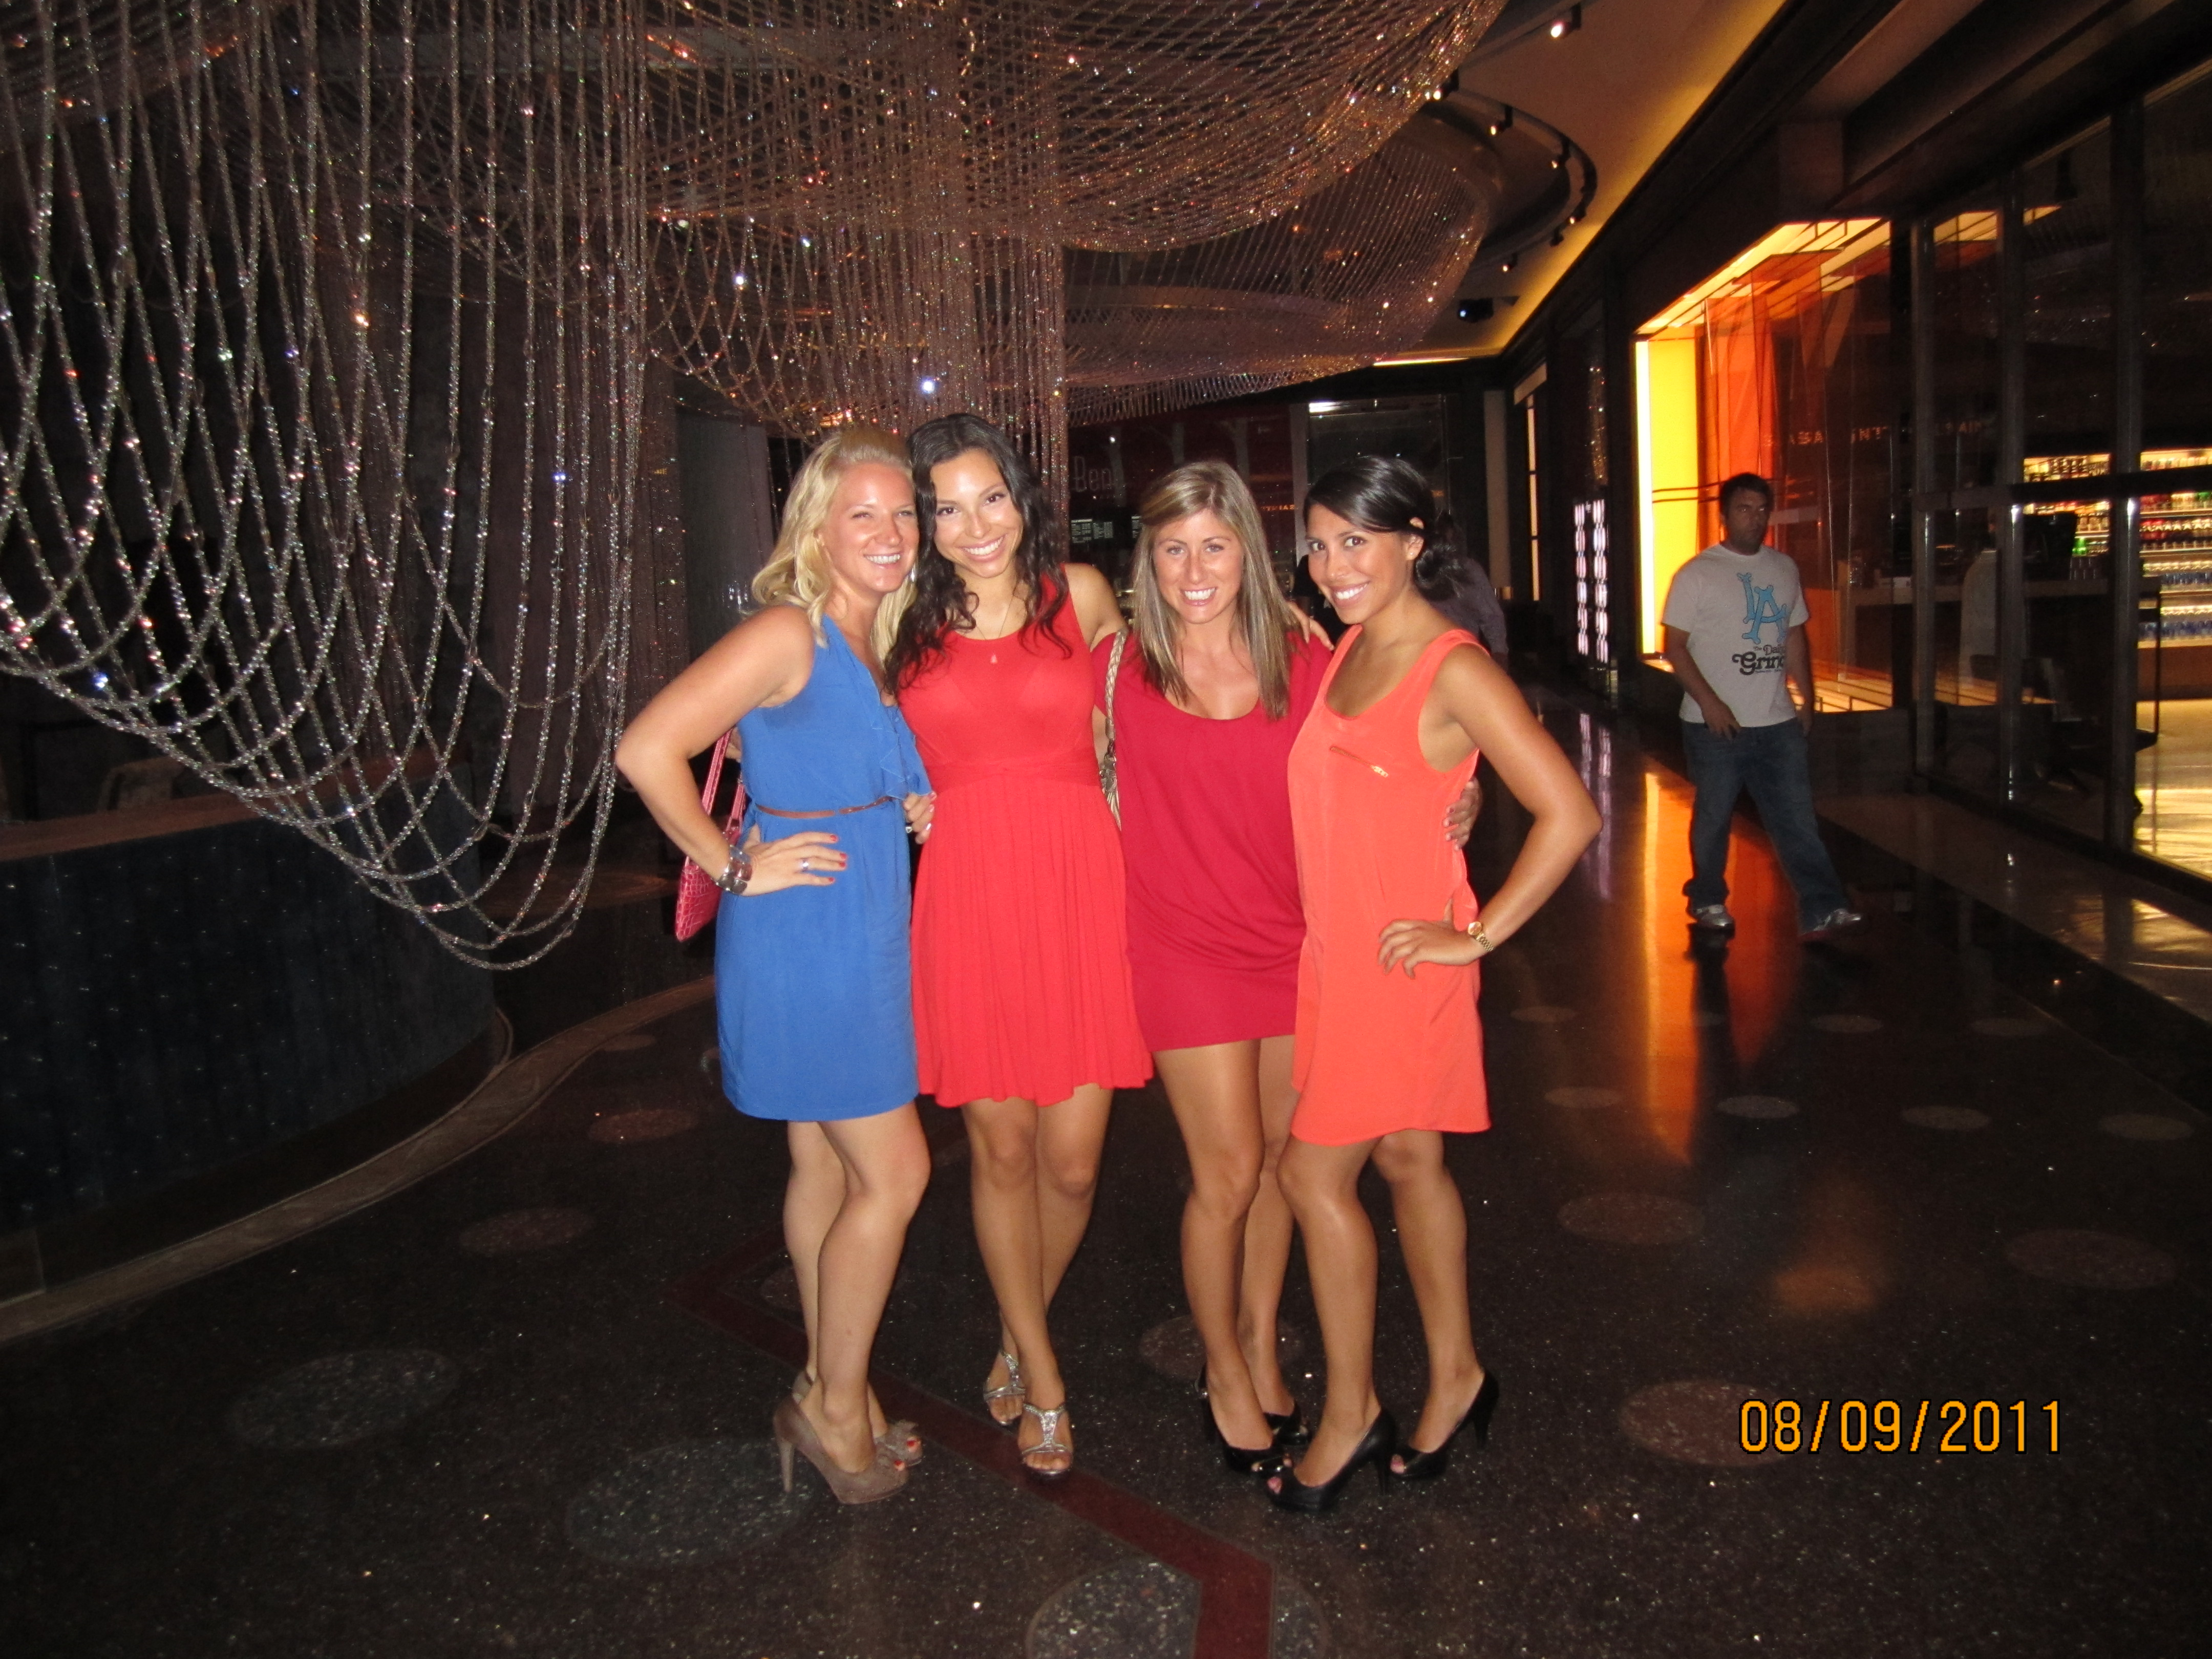 Fashion style Wear to what night out in vegas for lady